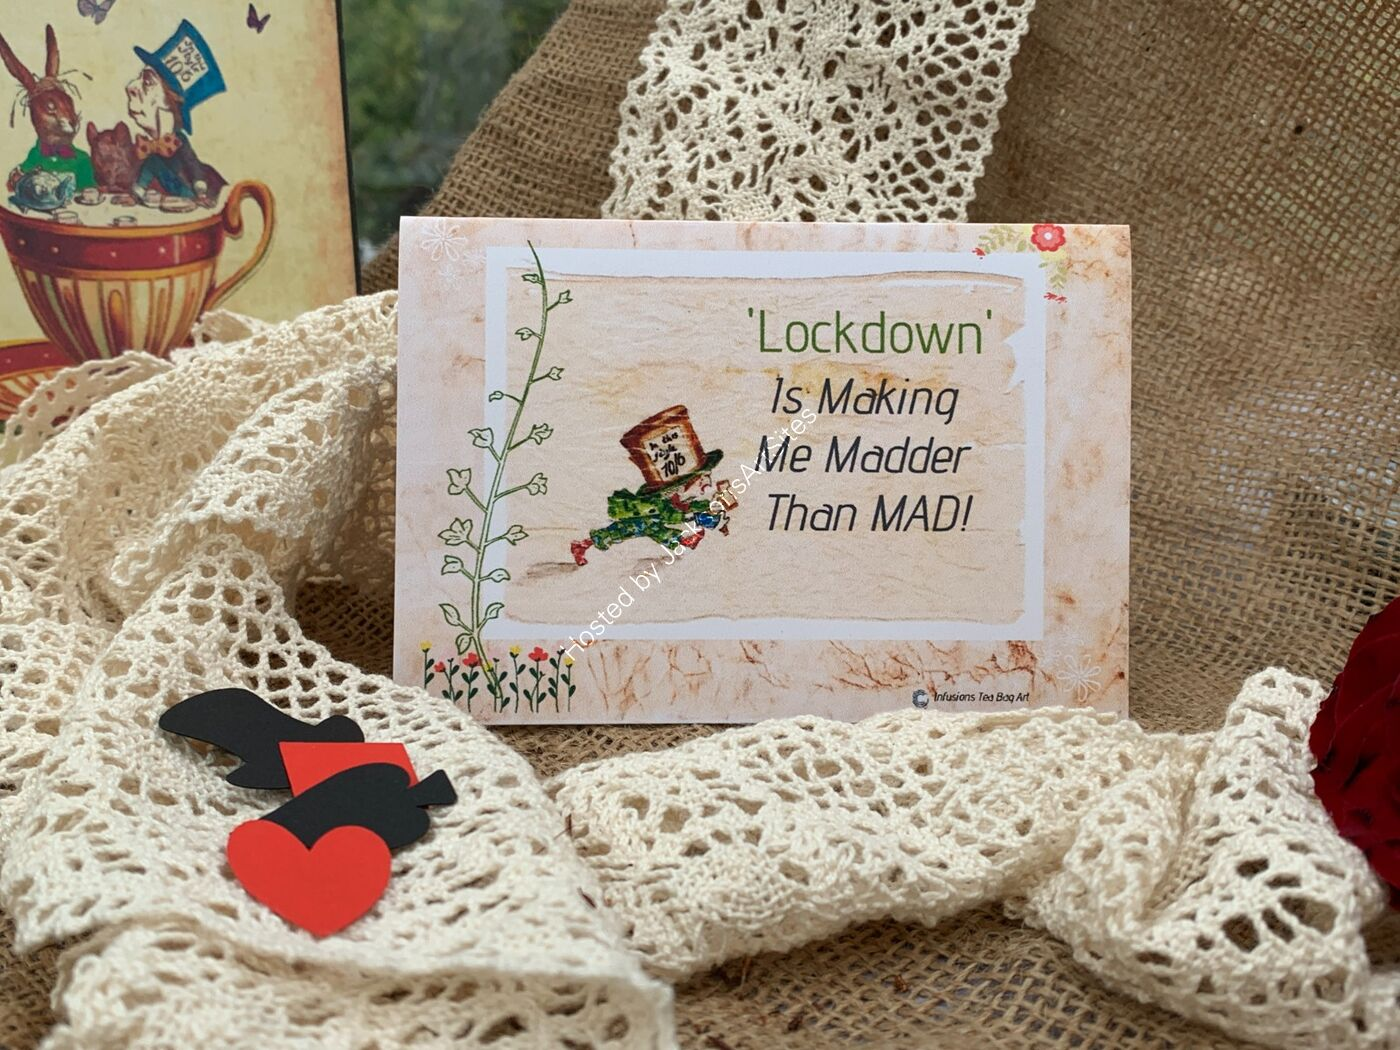 Mad Hatter Lockdown Cards